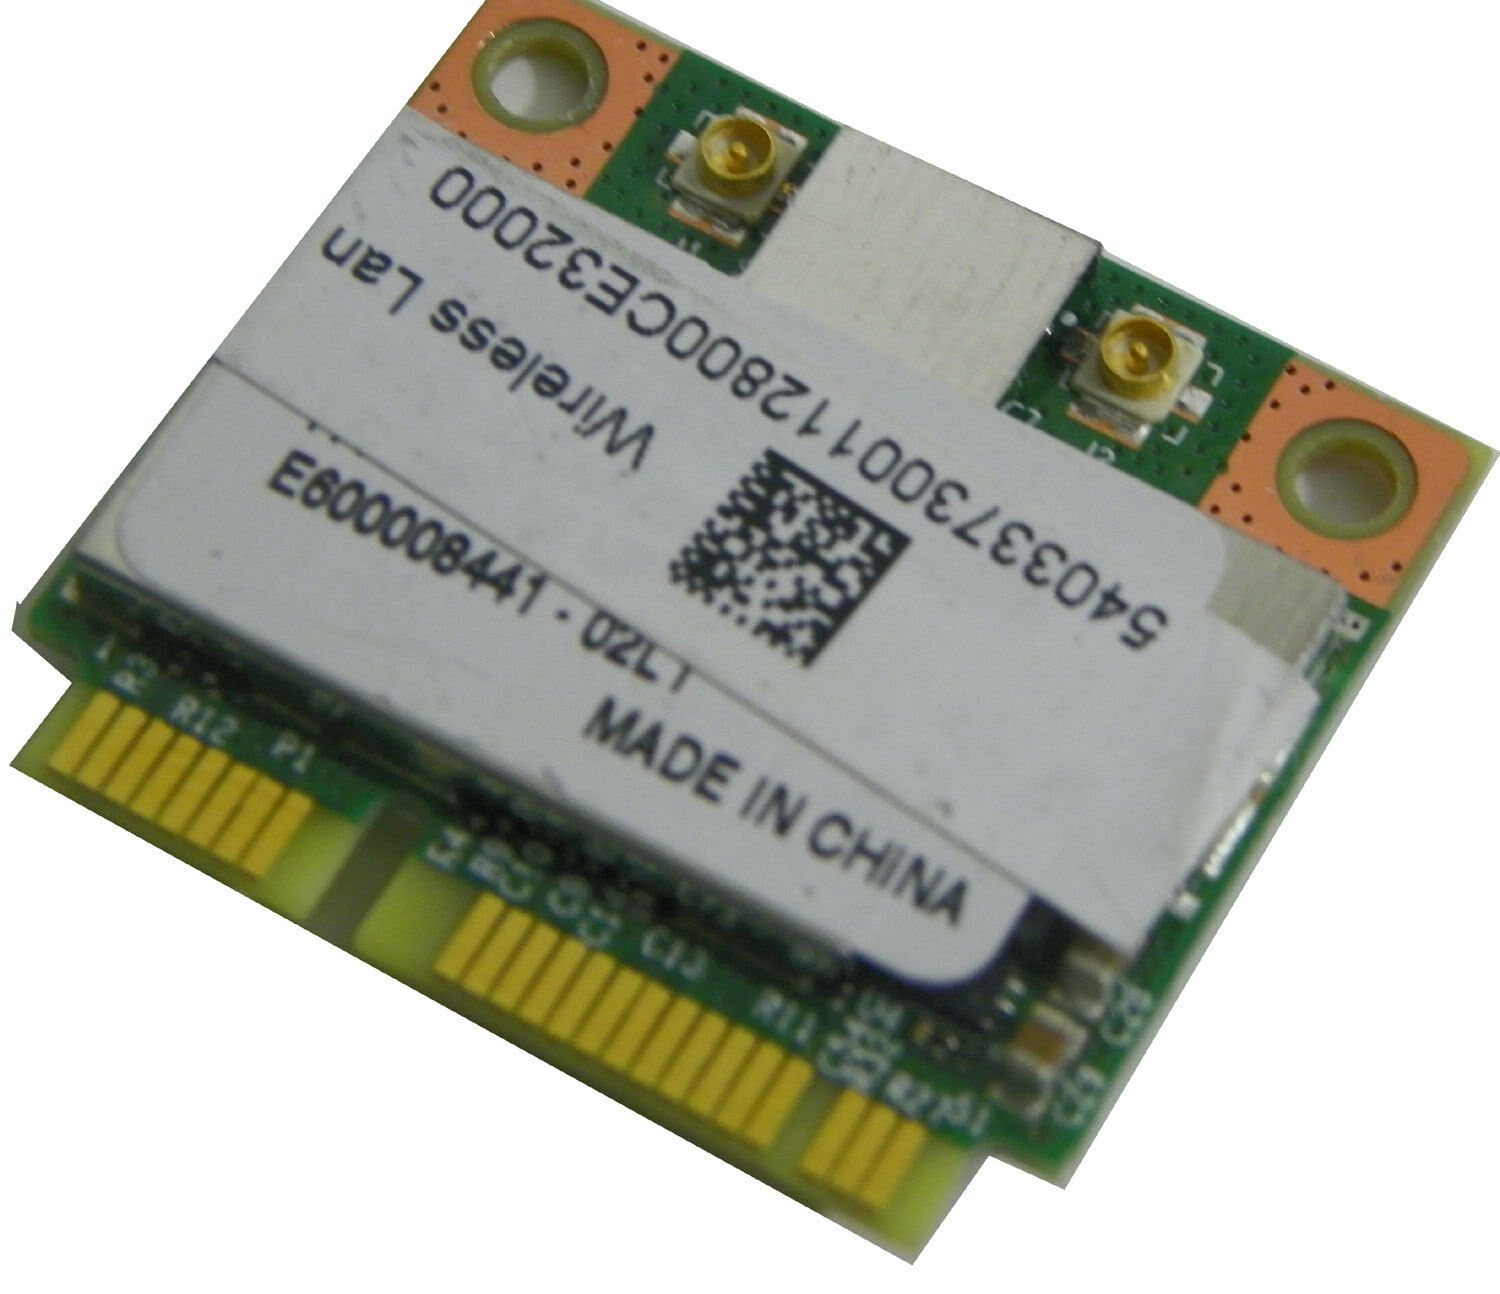 broadcom 802.11 n network adapter driver windows 8 free download